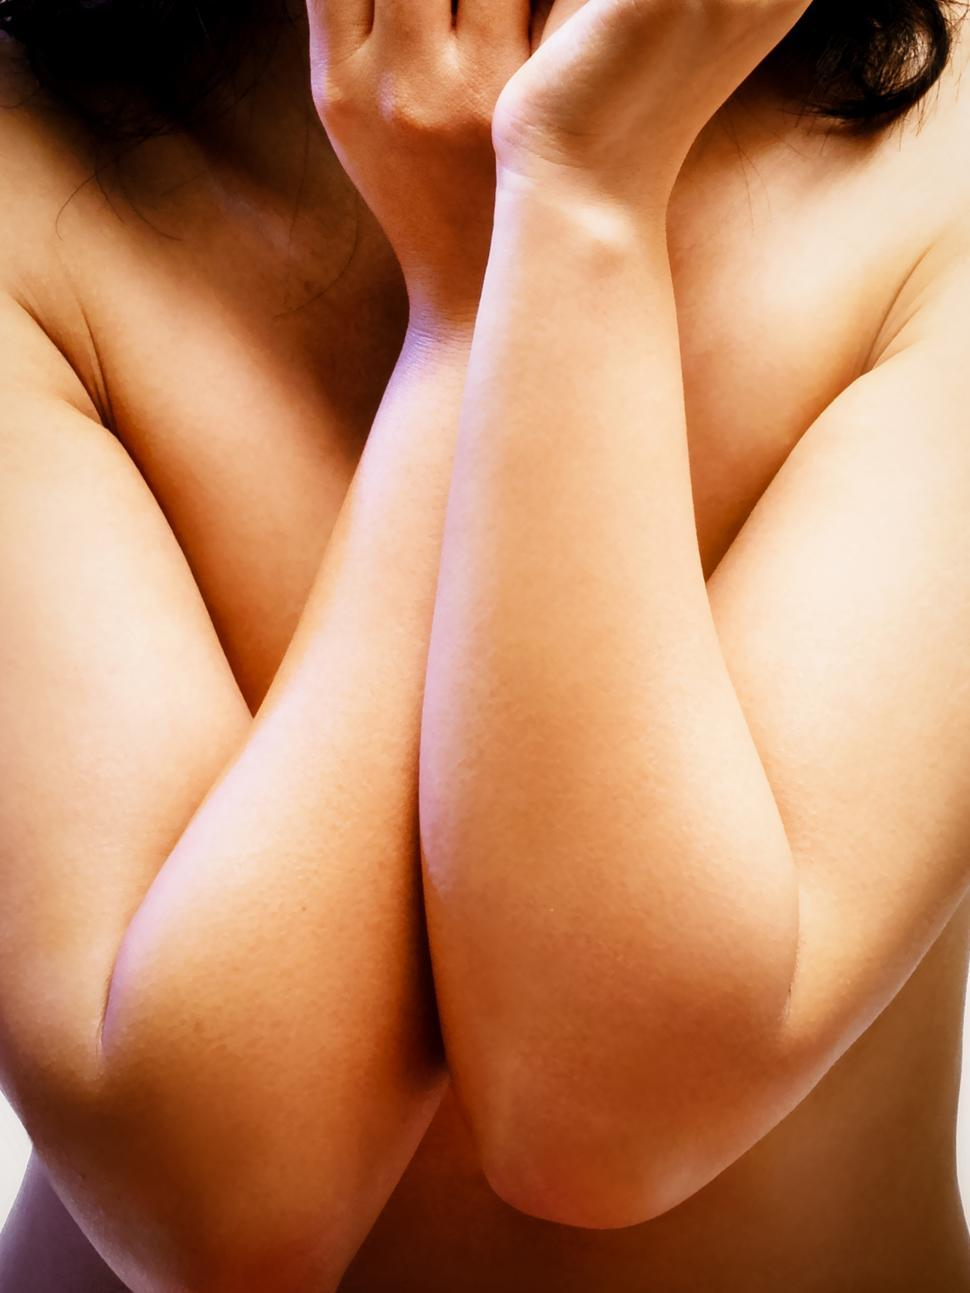 Download Free Stock Photo of Close up woman body arms and hands